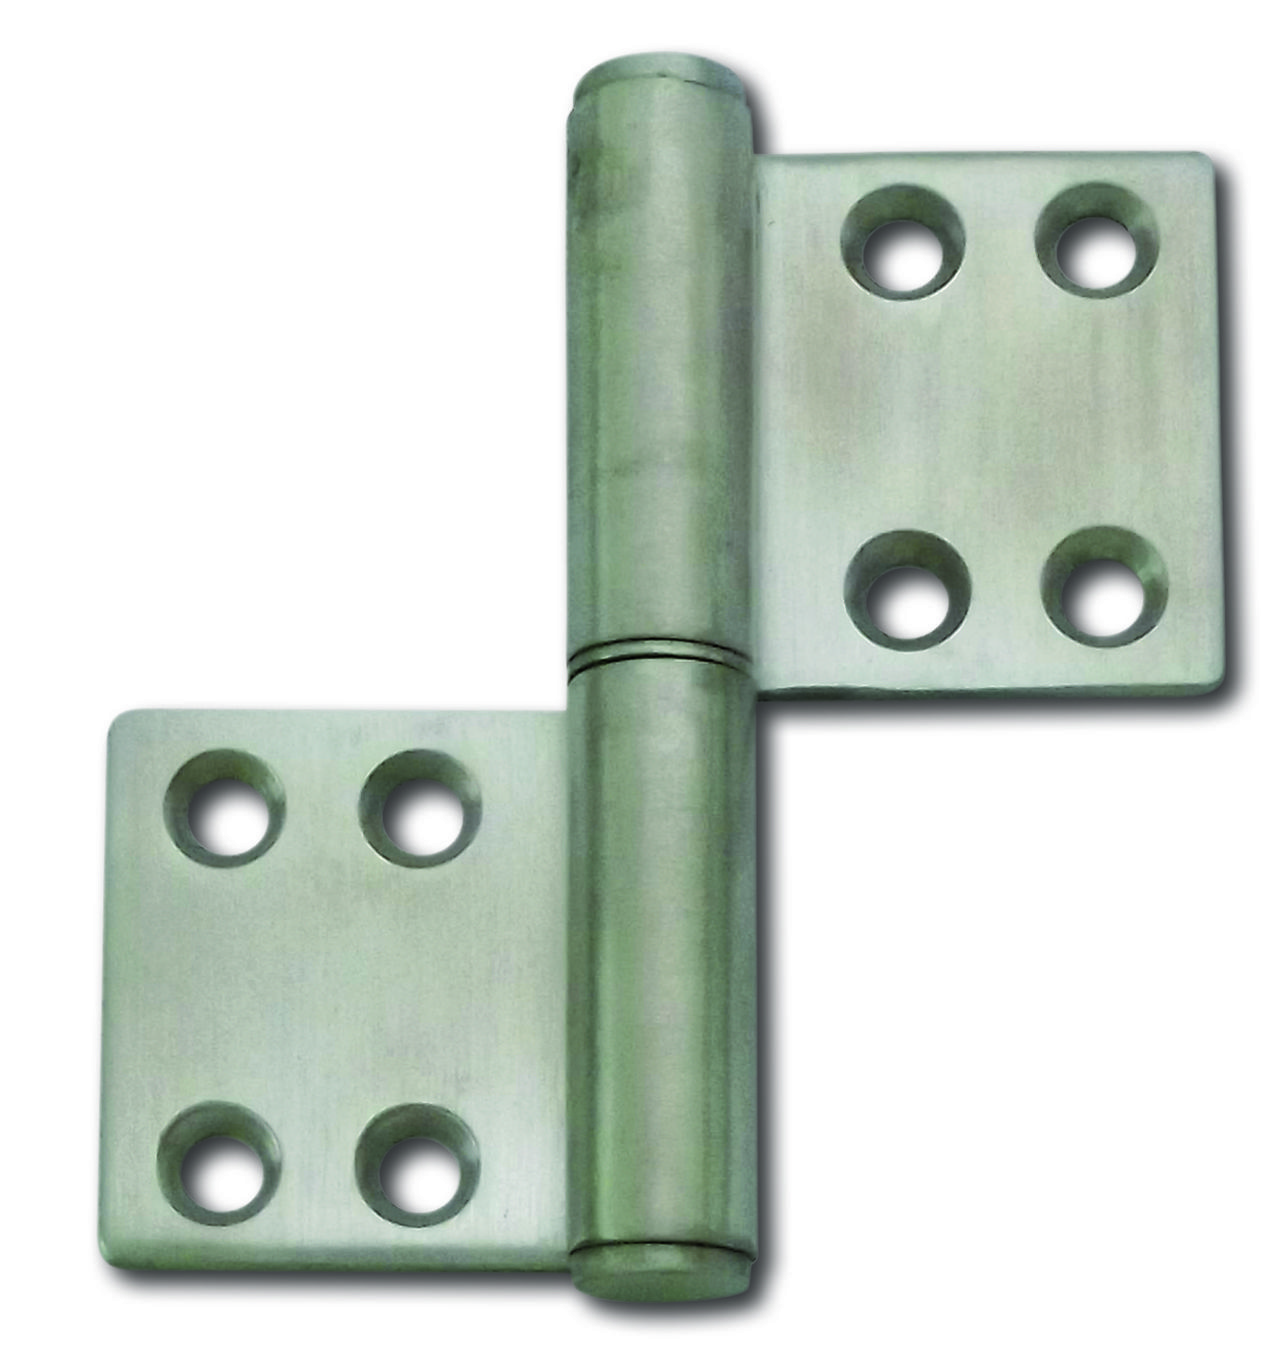 Flag Hinge Loose Pin Hinge Made Of Stainless Steel 304